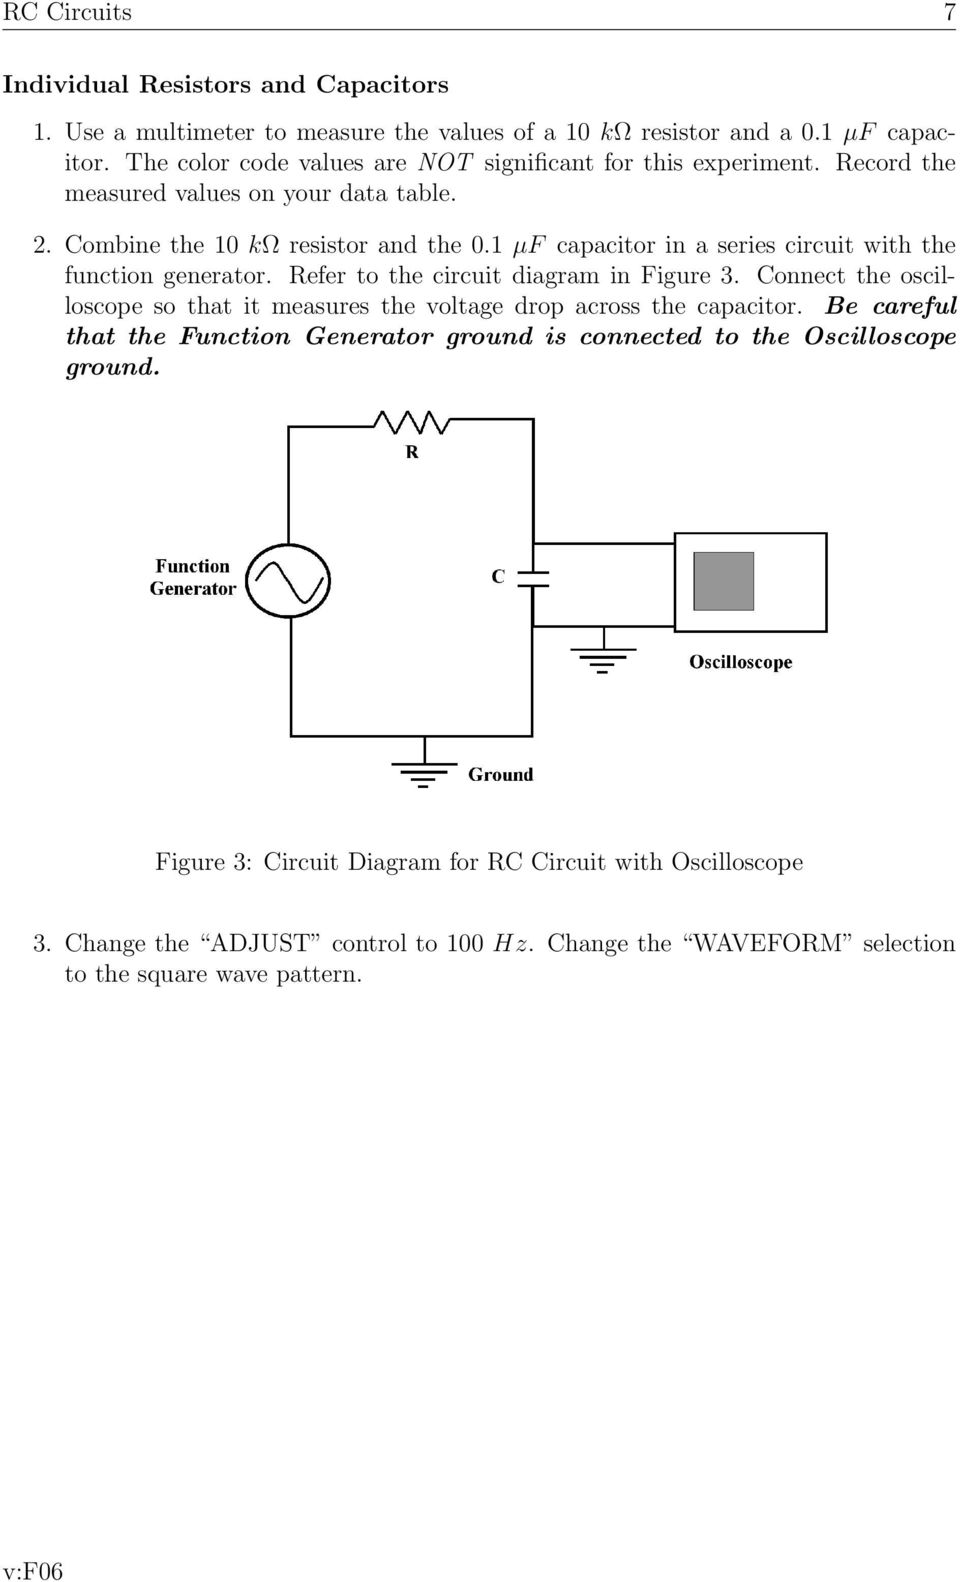 medium resolution of 1 f capacitor in a series circuit with the function generator refer to the circuit